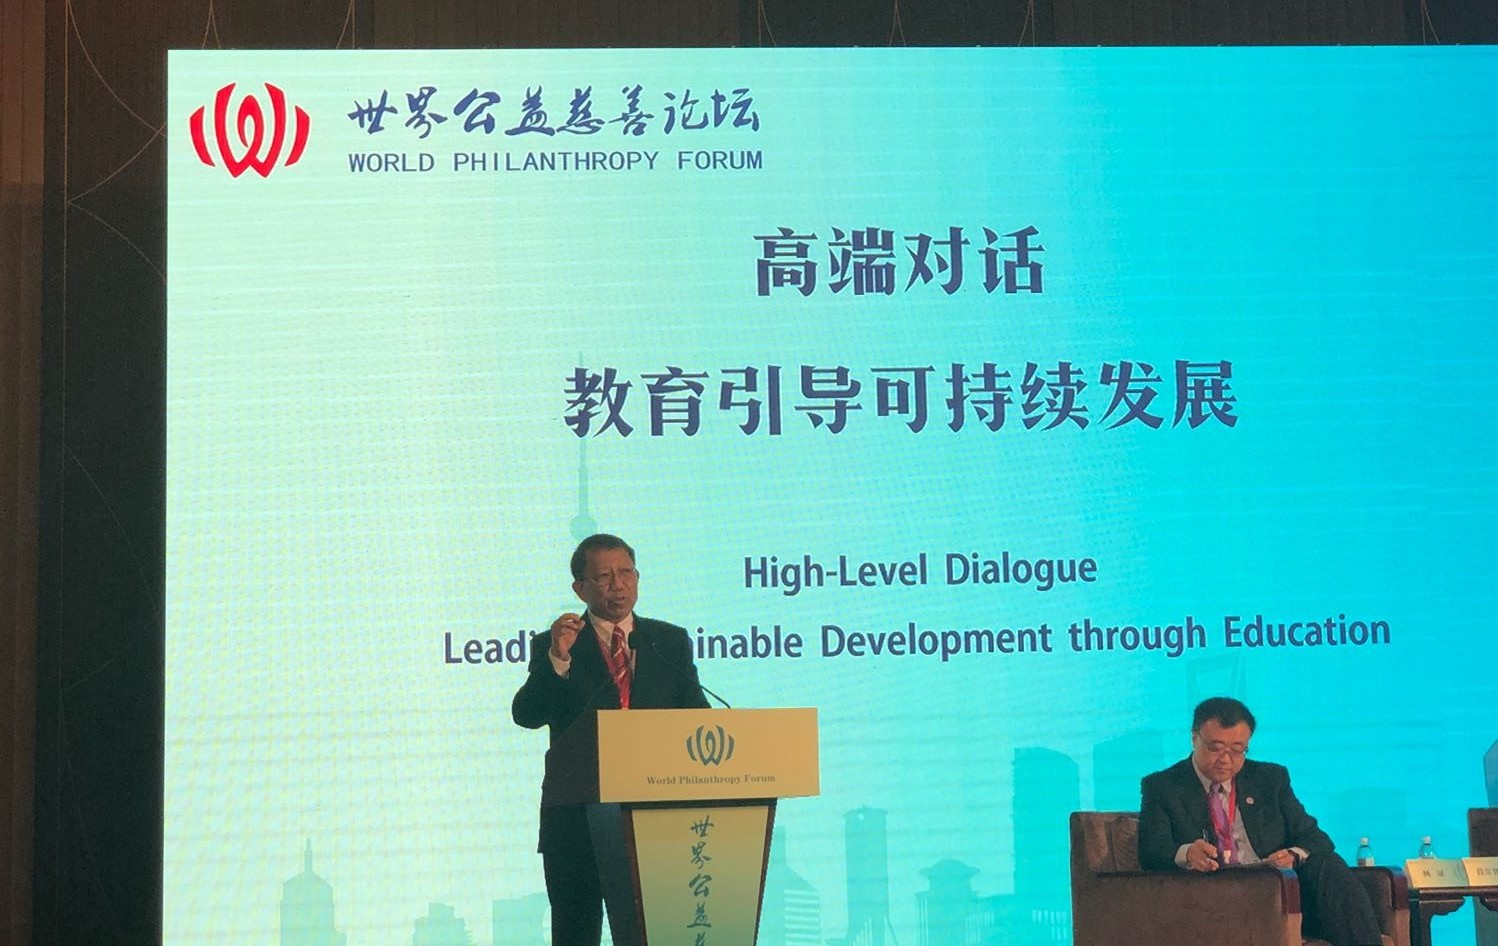 Professor Rocky S. Tuan, Vice-Chancellor and President of CUHK engages in a high-level dialogue about 'Leading Sustainable Development through Education'.